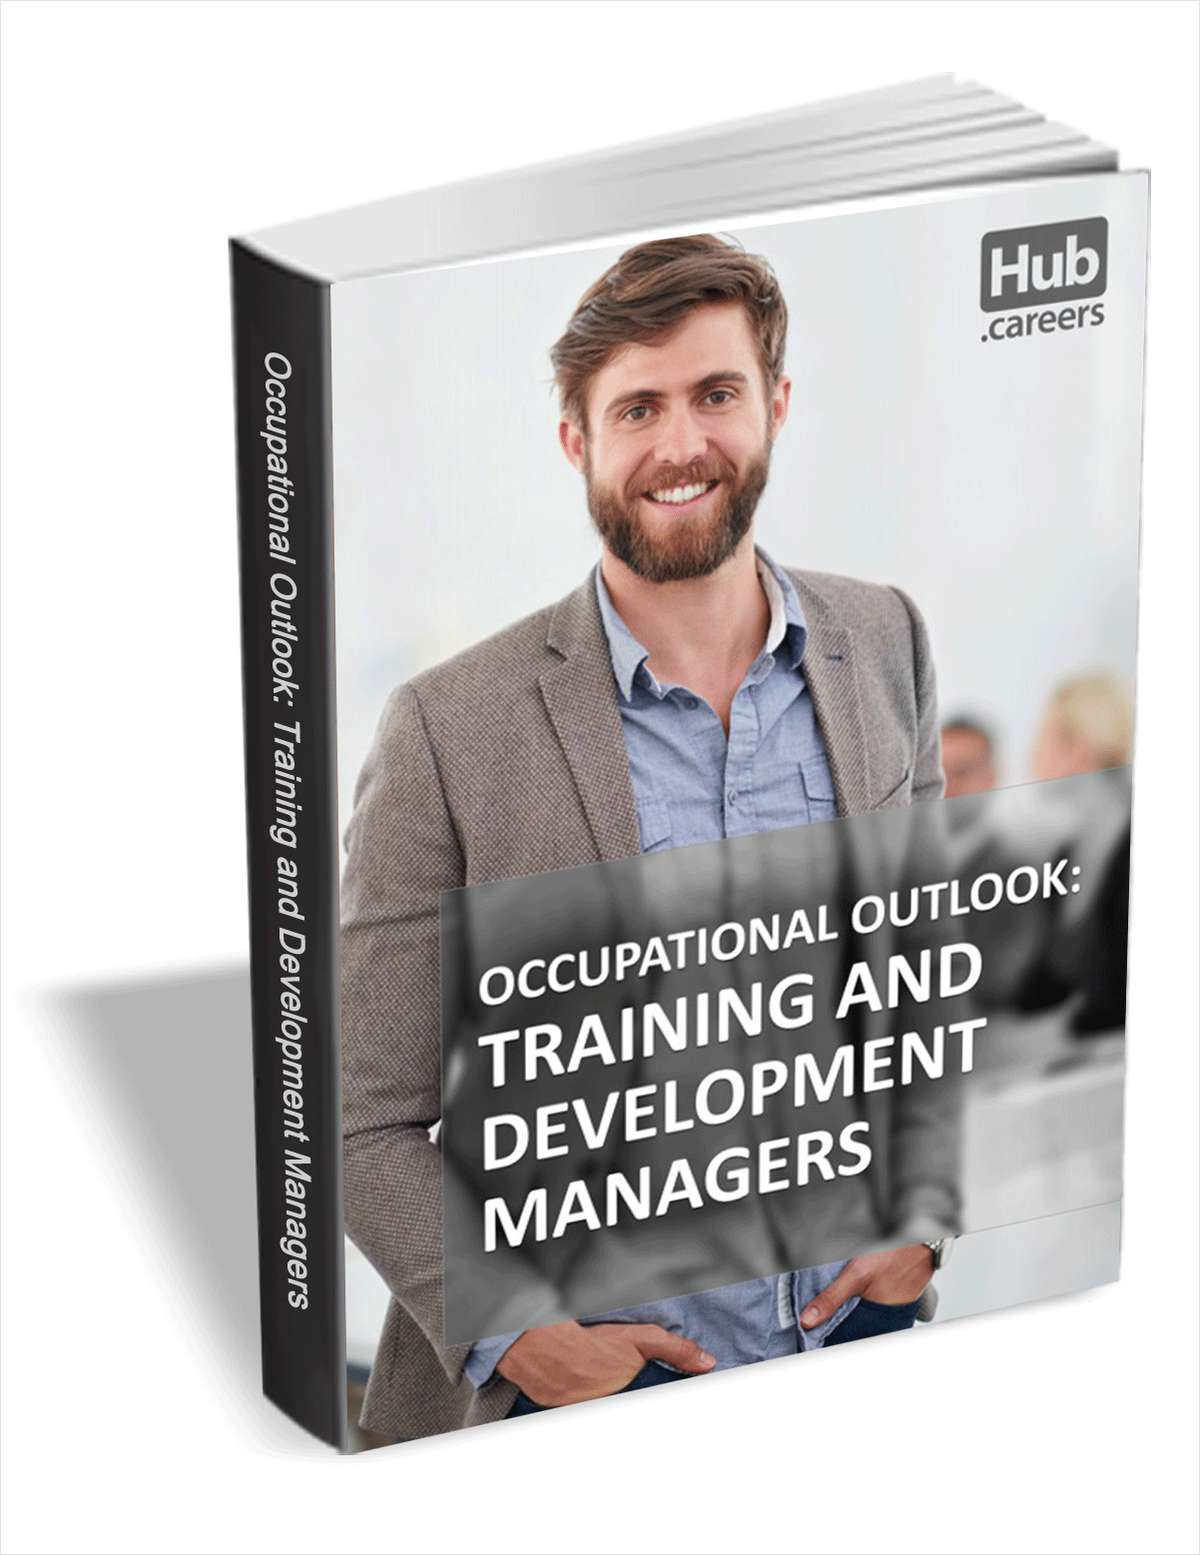 Training and Development Managers - Occupational Outlook